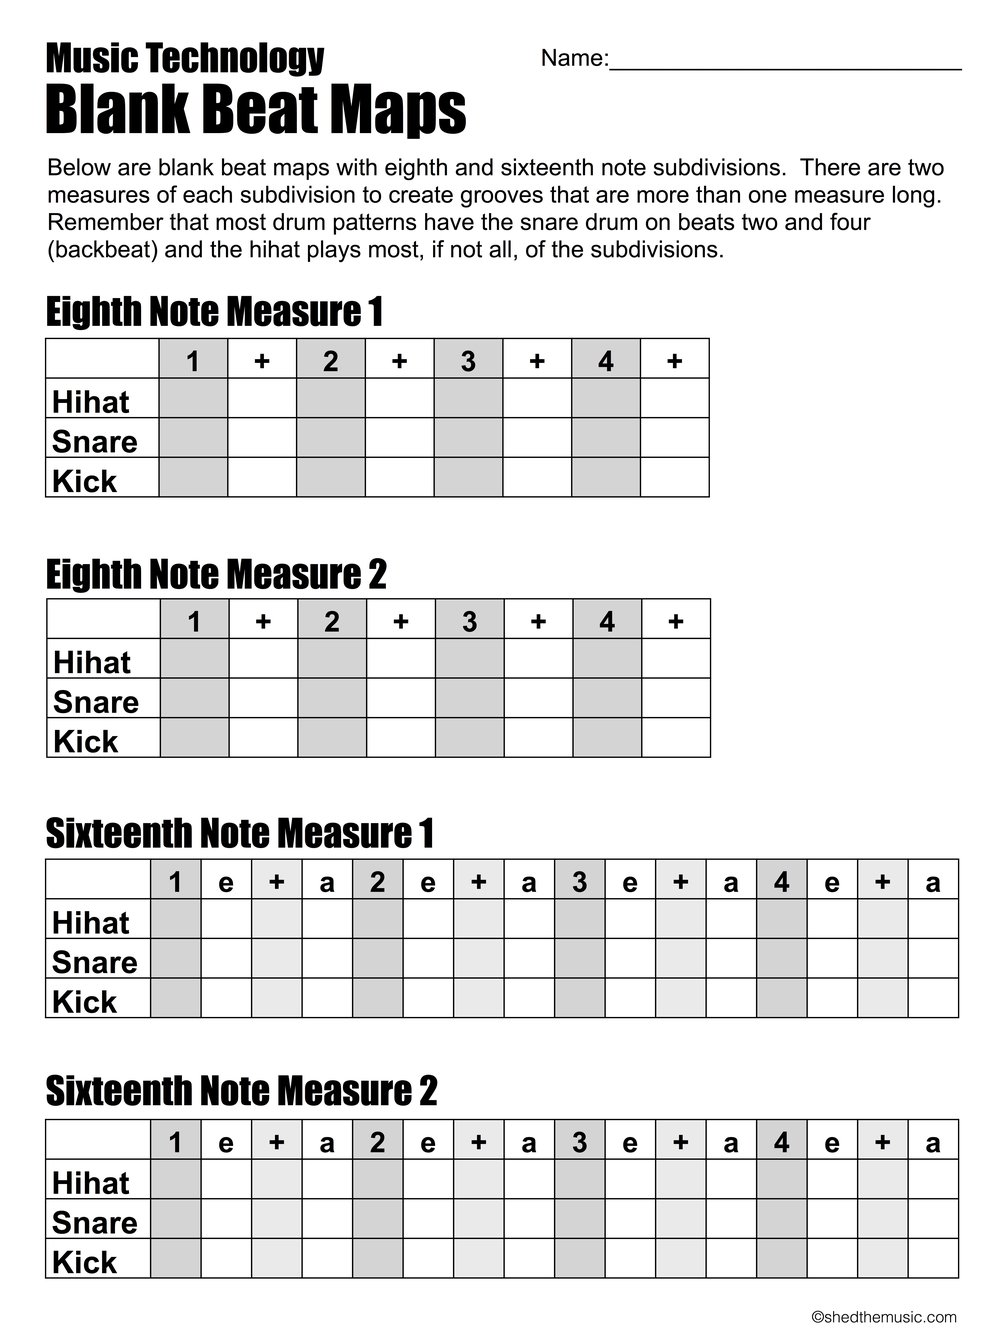 Blank beat Map worksheet.jpg